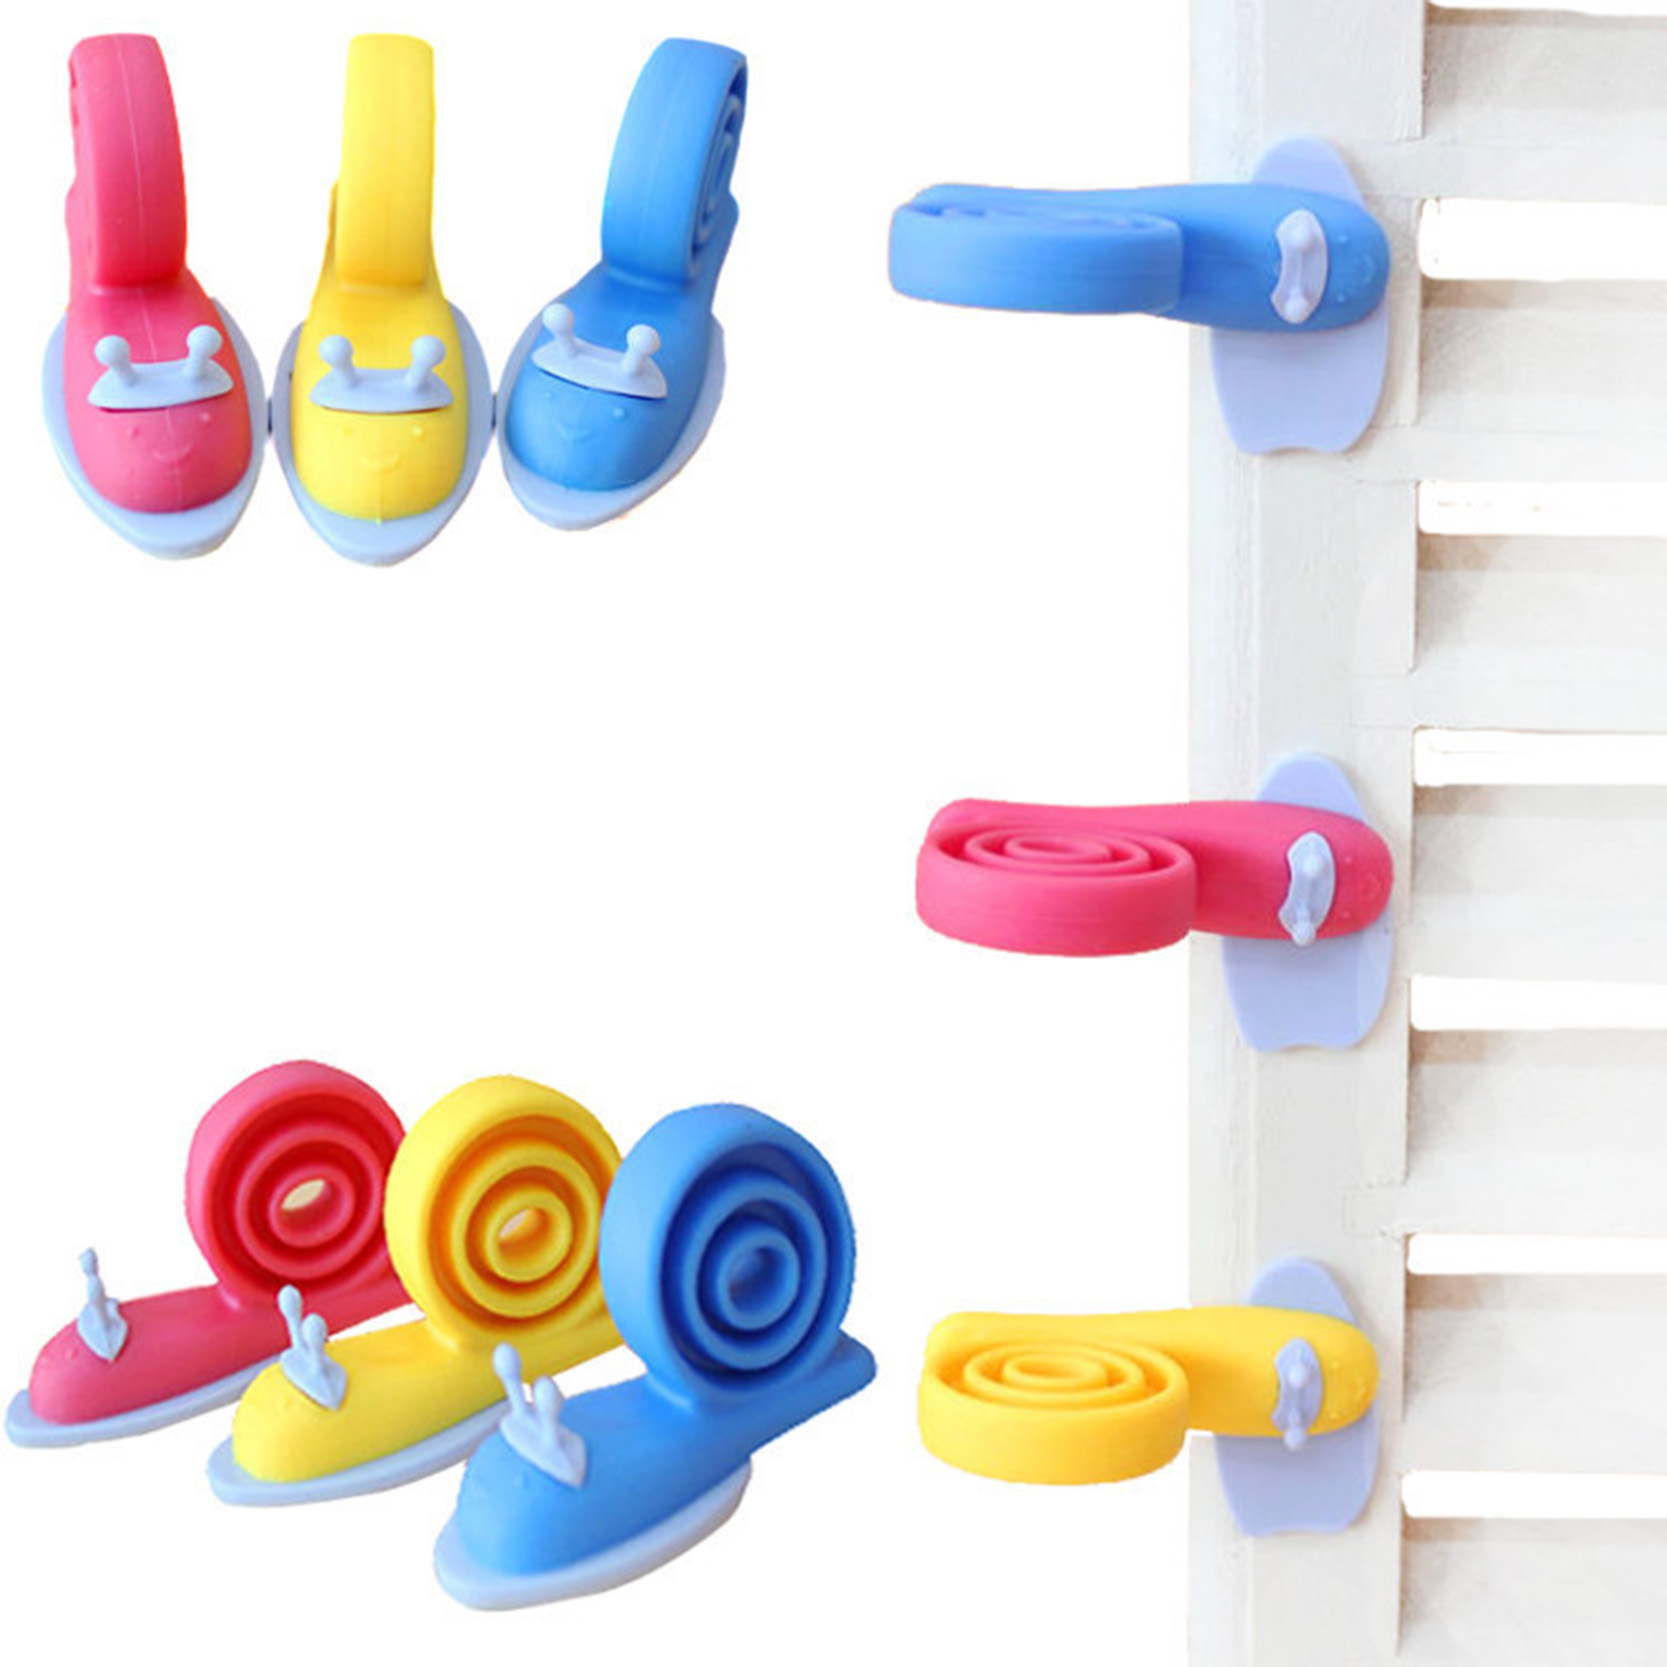 3pcs Random Color Baby Helper Safety Door Stop Finger Pinch Guard Child Kid Infant Cute Safety Protector Doorway safety pvc special forces helmet random color